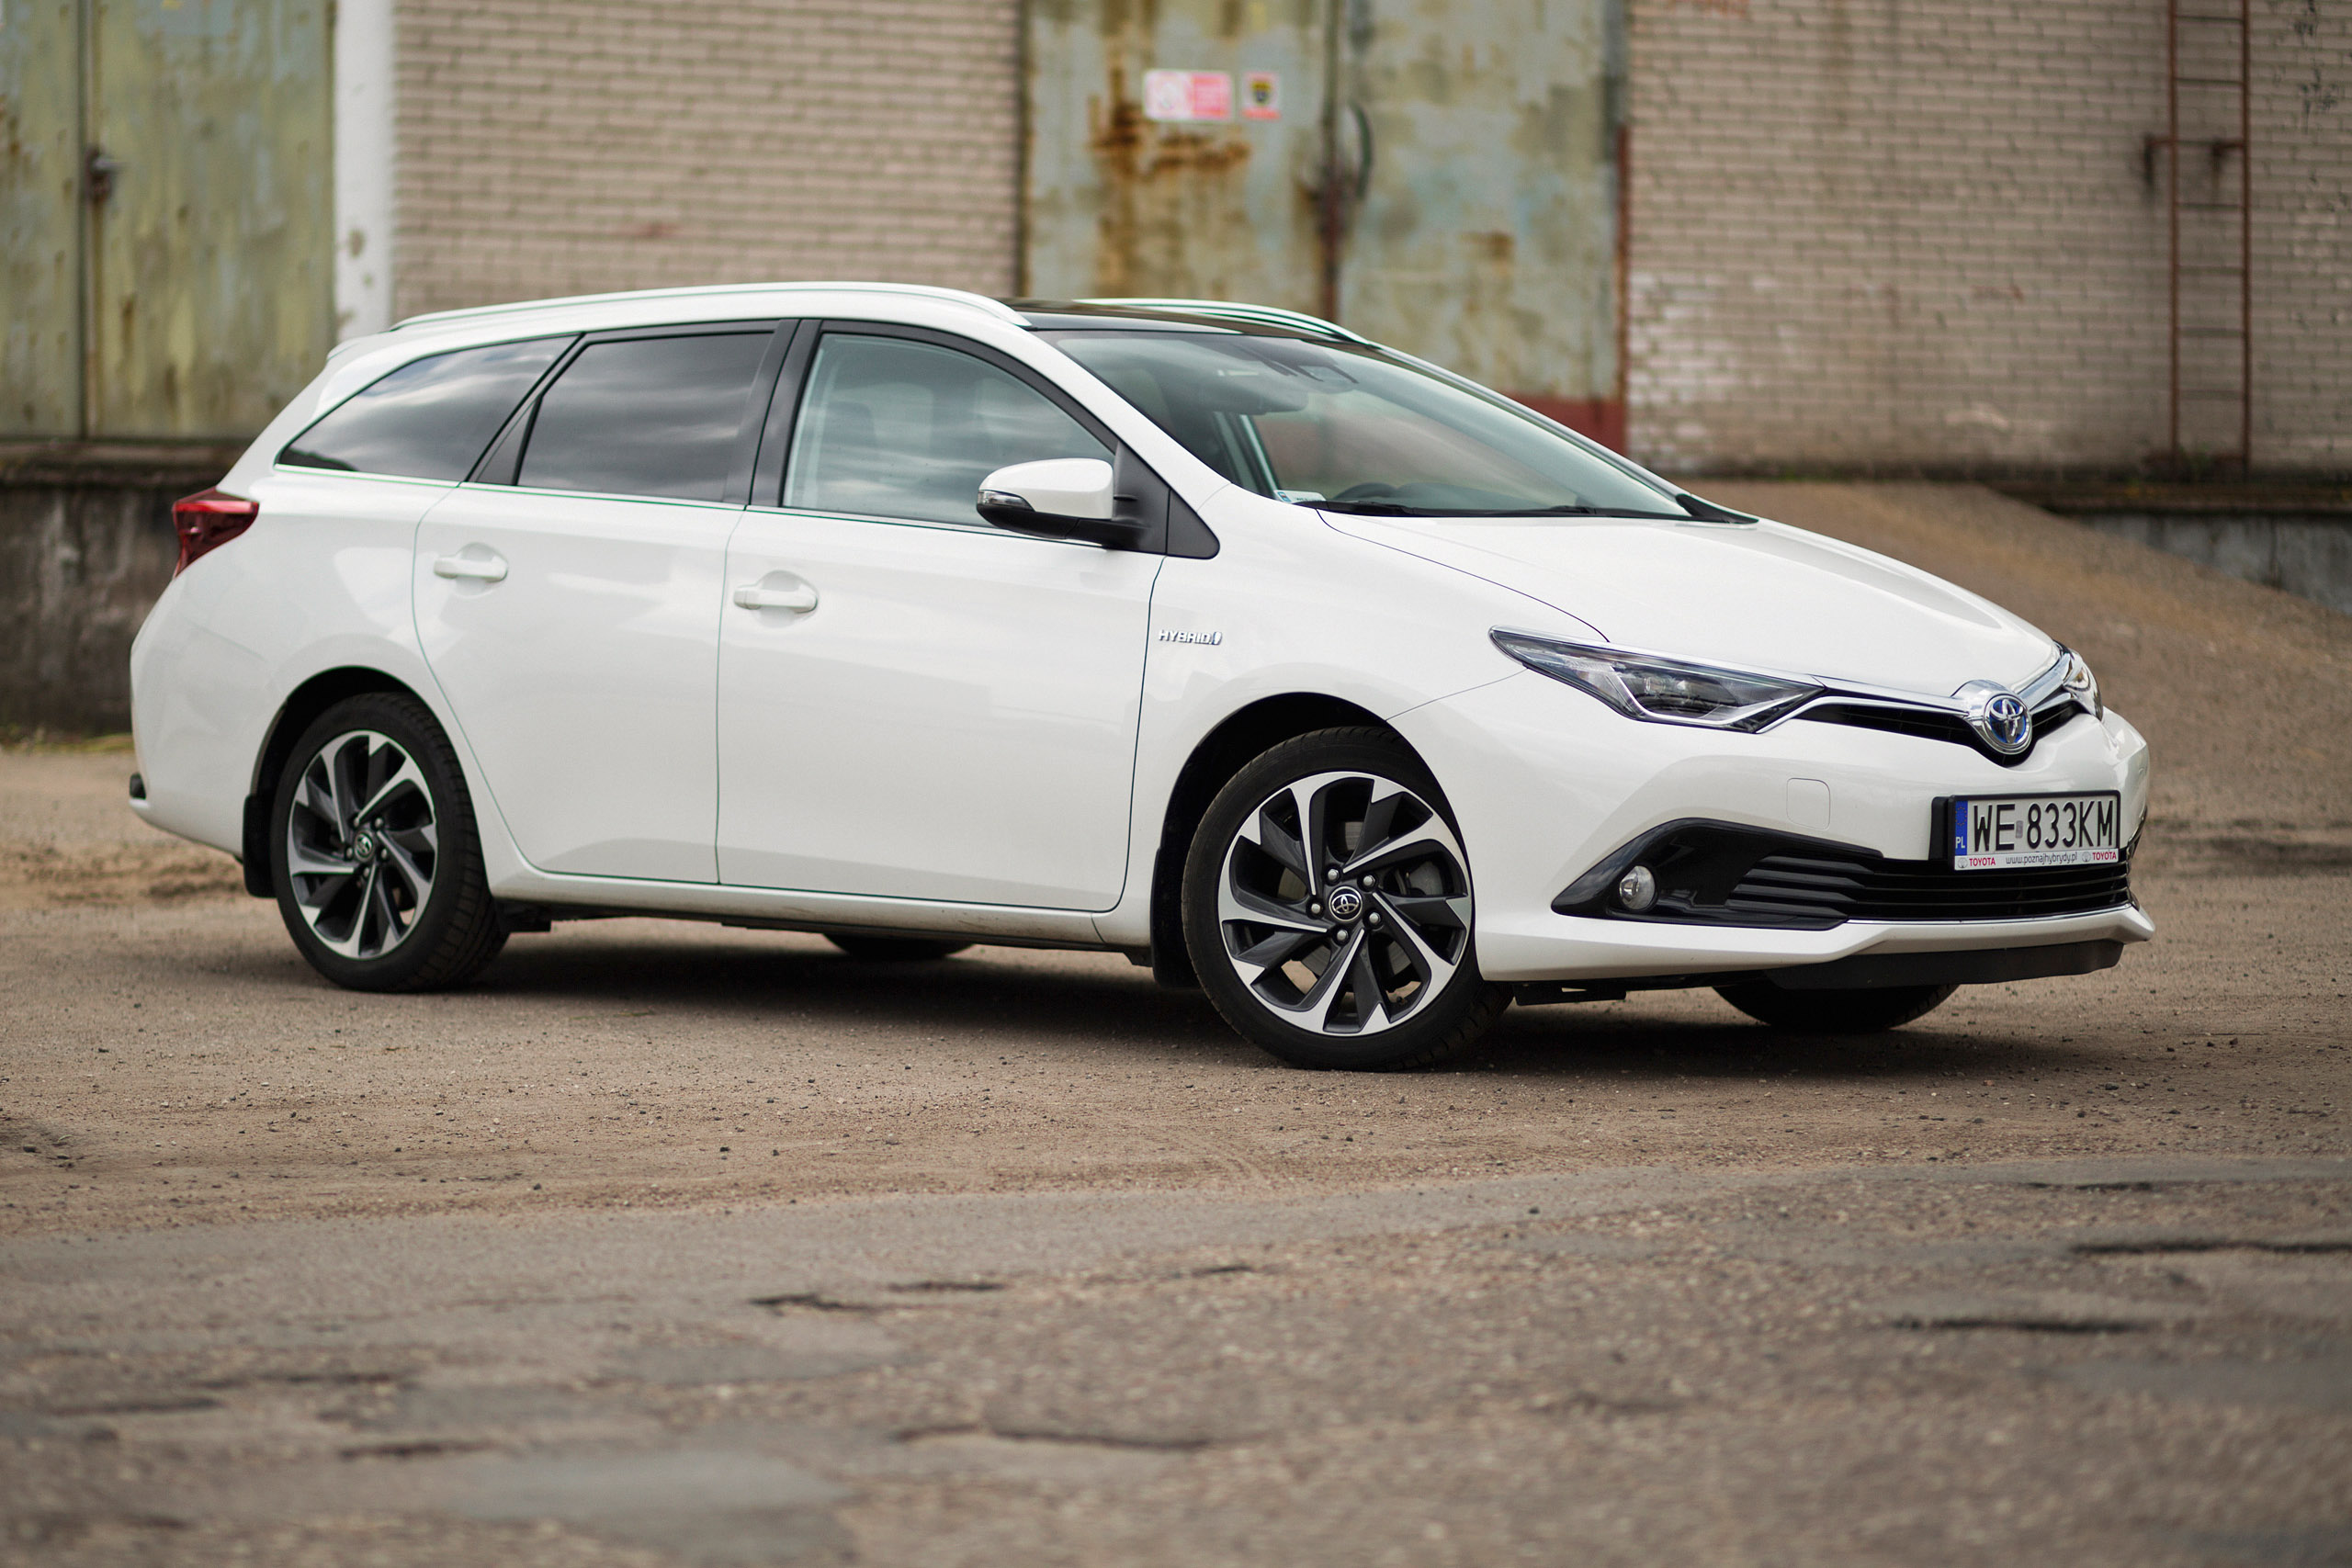 toyota auris touring sports 1 8 hybrid comfort test project automotive. Black Bedroom Furniture Sets. Home Design Ideas